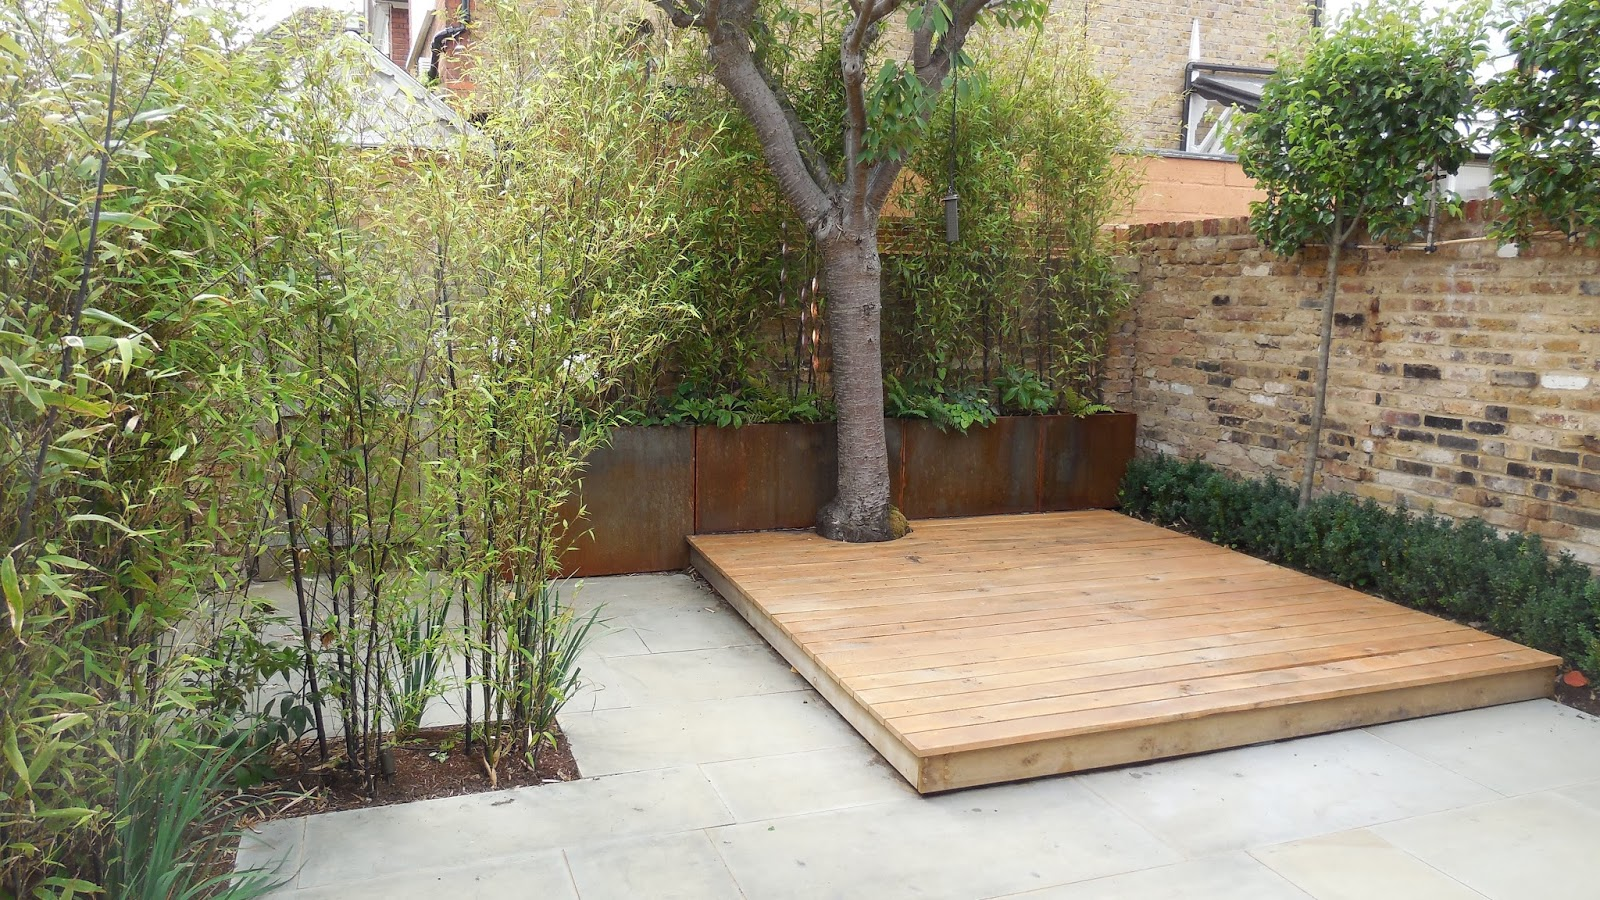 garden planters in london with Industrial Style Courtyard Garden In on Roof Terrace Design Kings Cross St Pancras additionally Rattan Garden Furniture Sofa Set Santa Maria Brown likewise New Front Garden Car Parking Space further Tropical Garden furthermore Battersea.